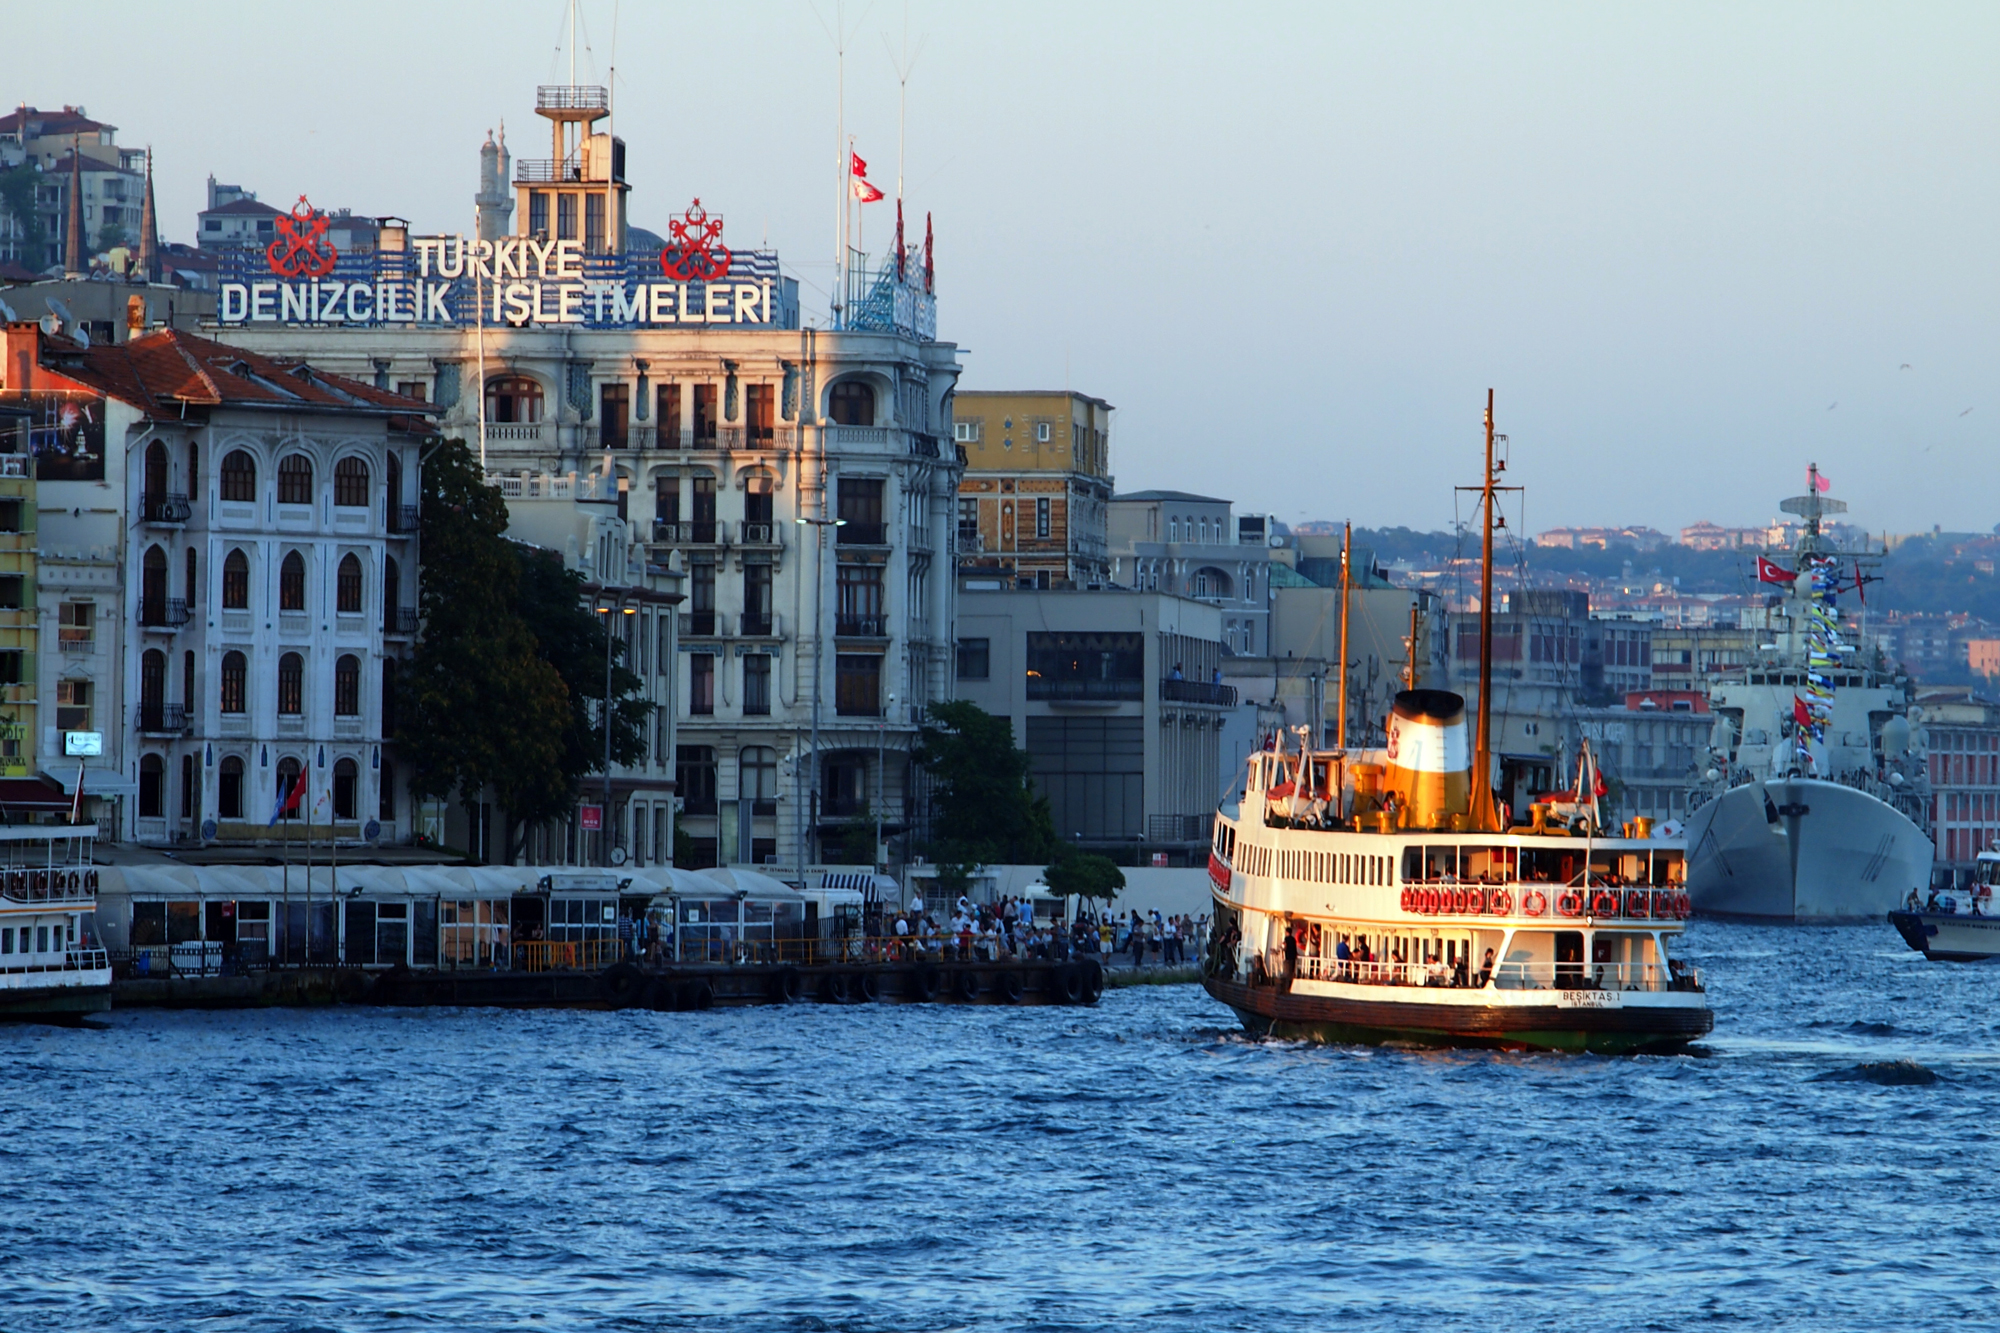 1_karakoy_ferry_port_big_subkarakoy